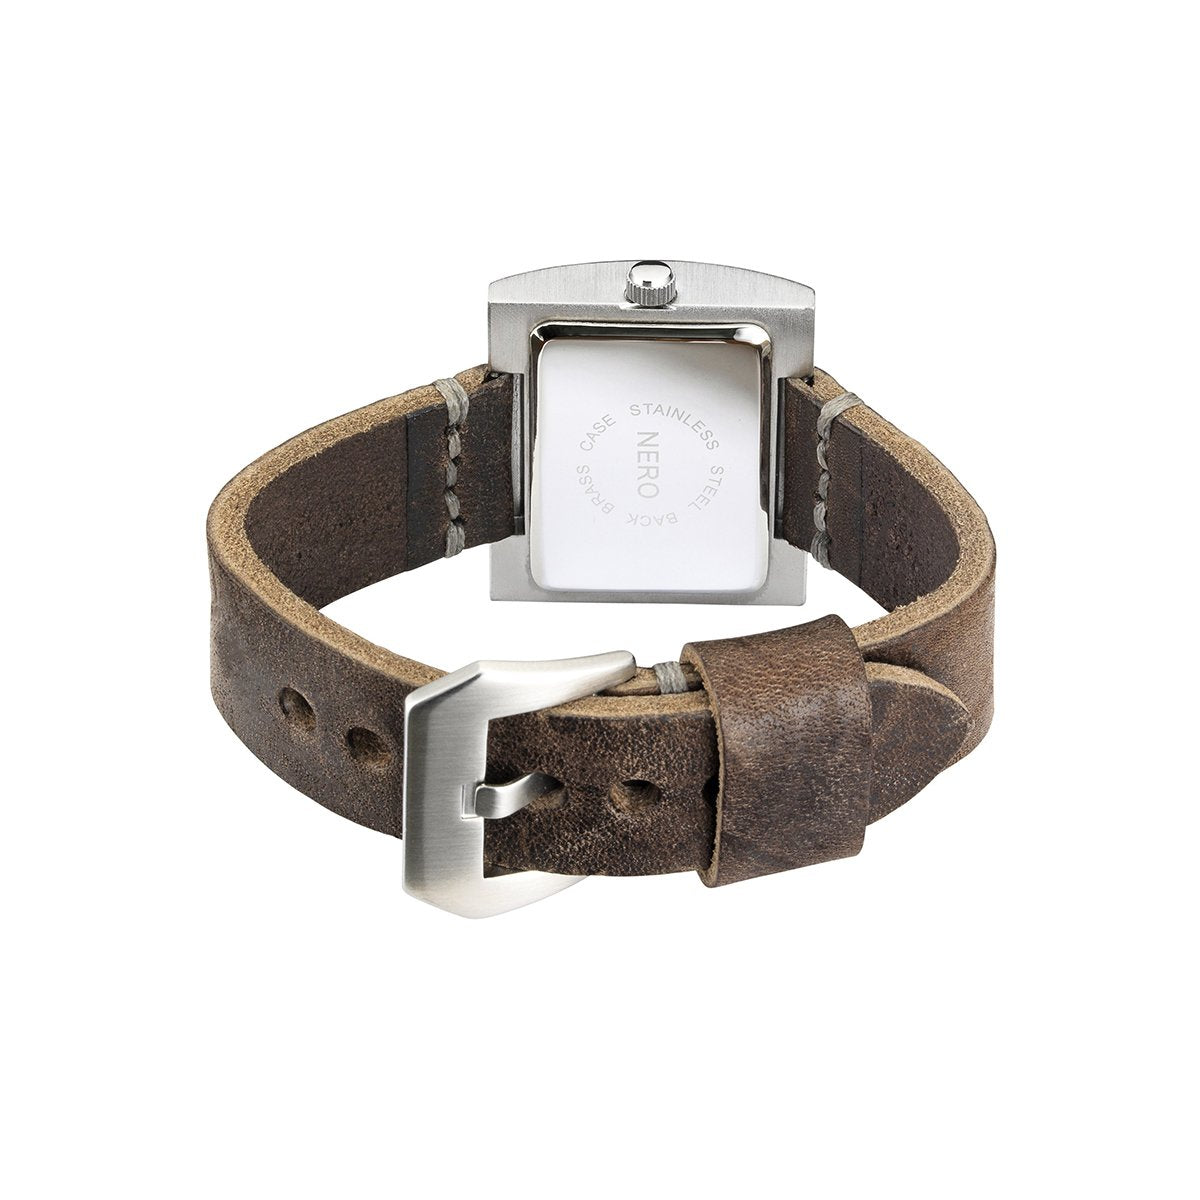 Nero Steel 104 Unisex Brown Leather Strap Watch